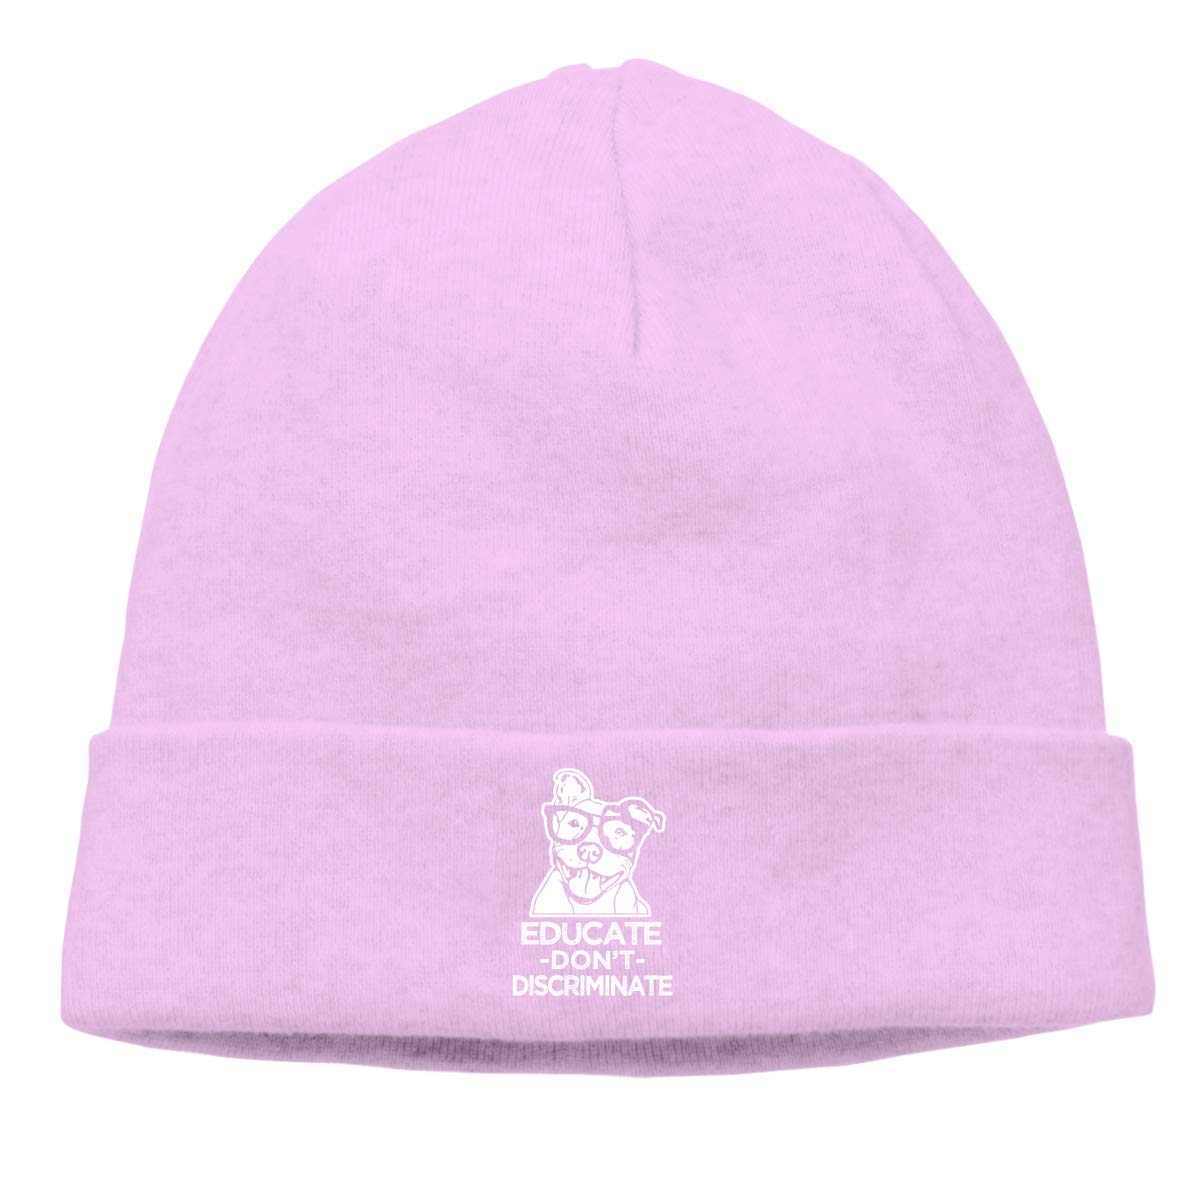 CgyOIUY-lop Beanie Hat Warm Hats Skull Cap Knitted Hat Educate Dont Discriminate Pitbull